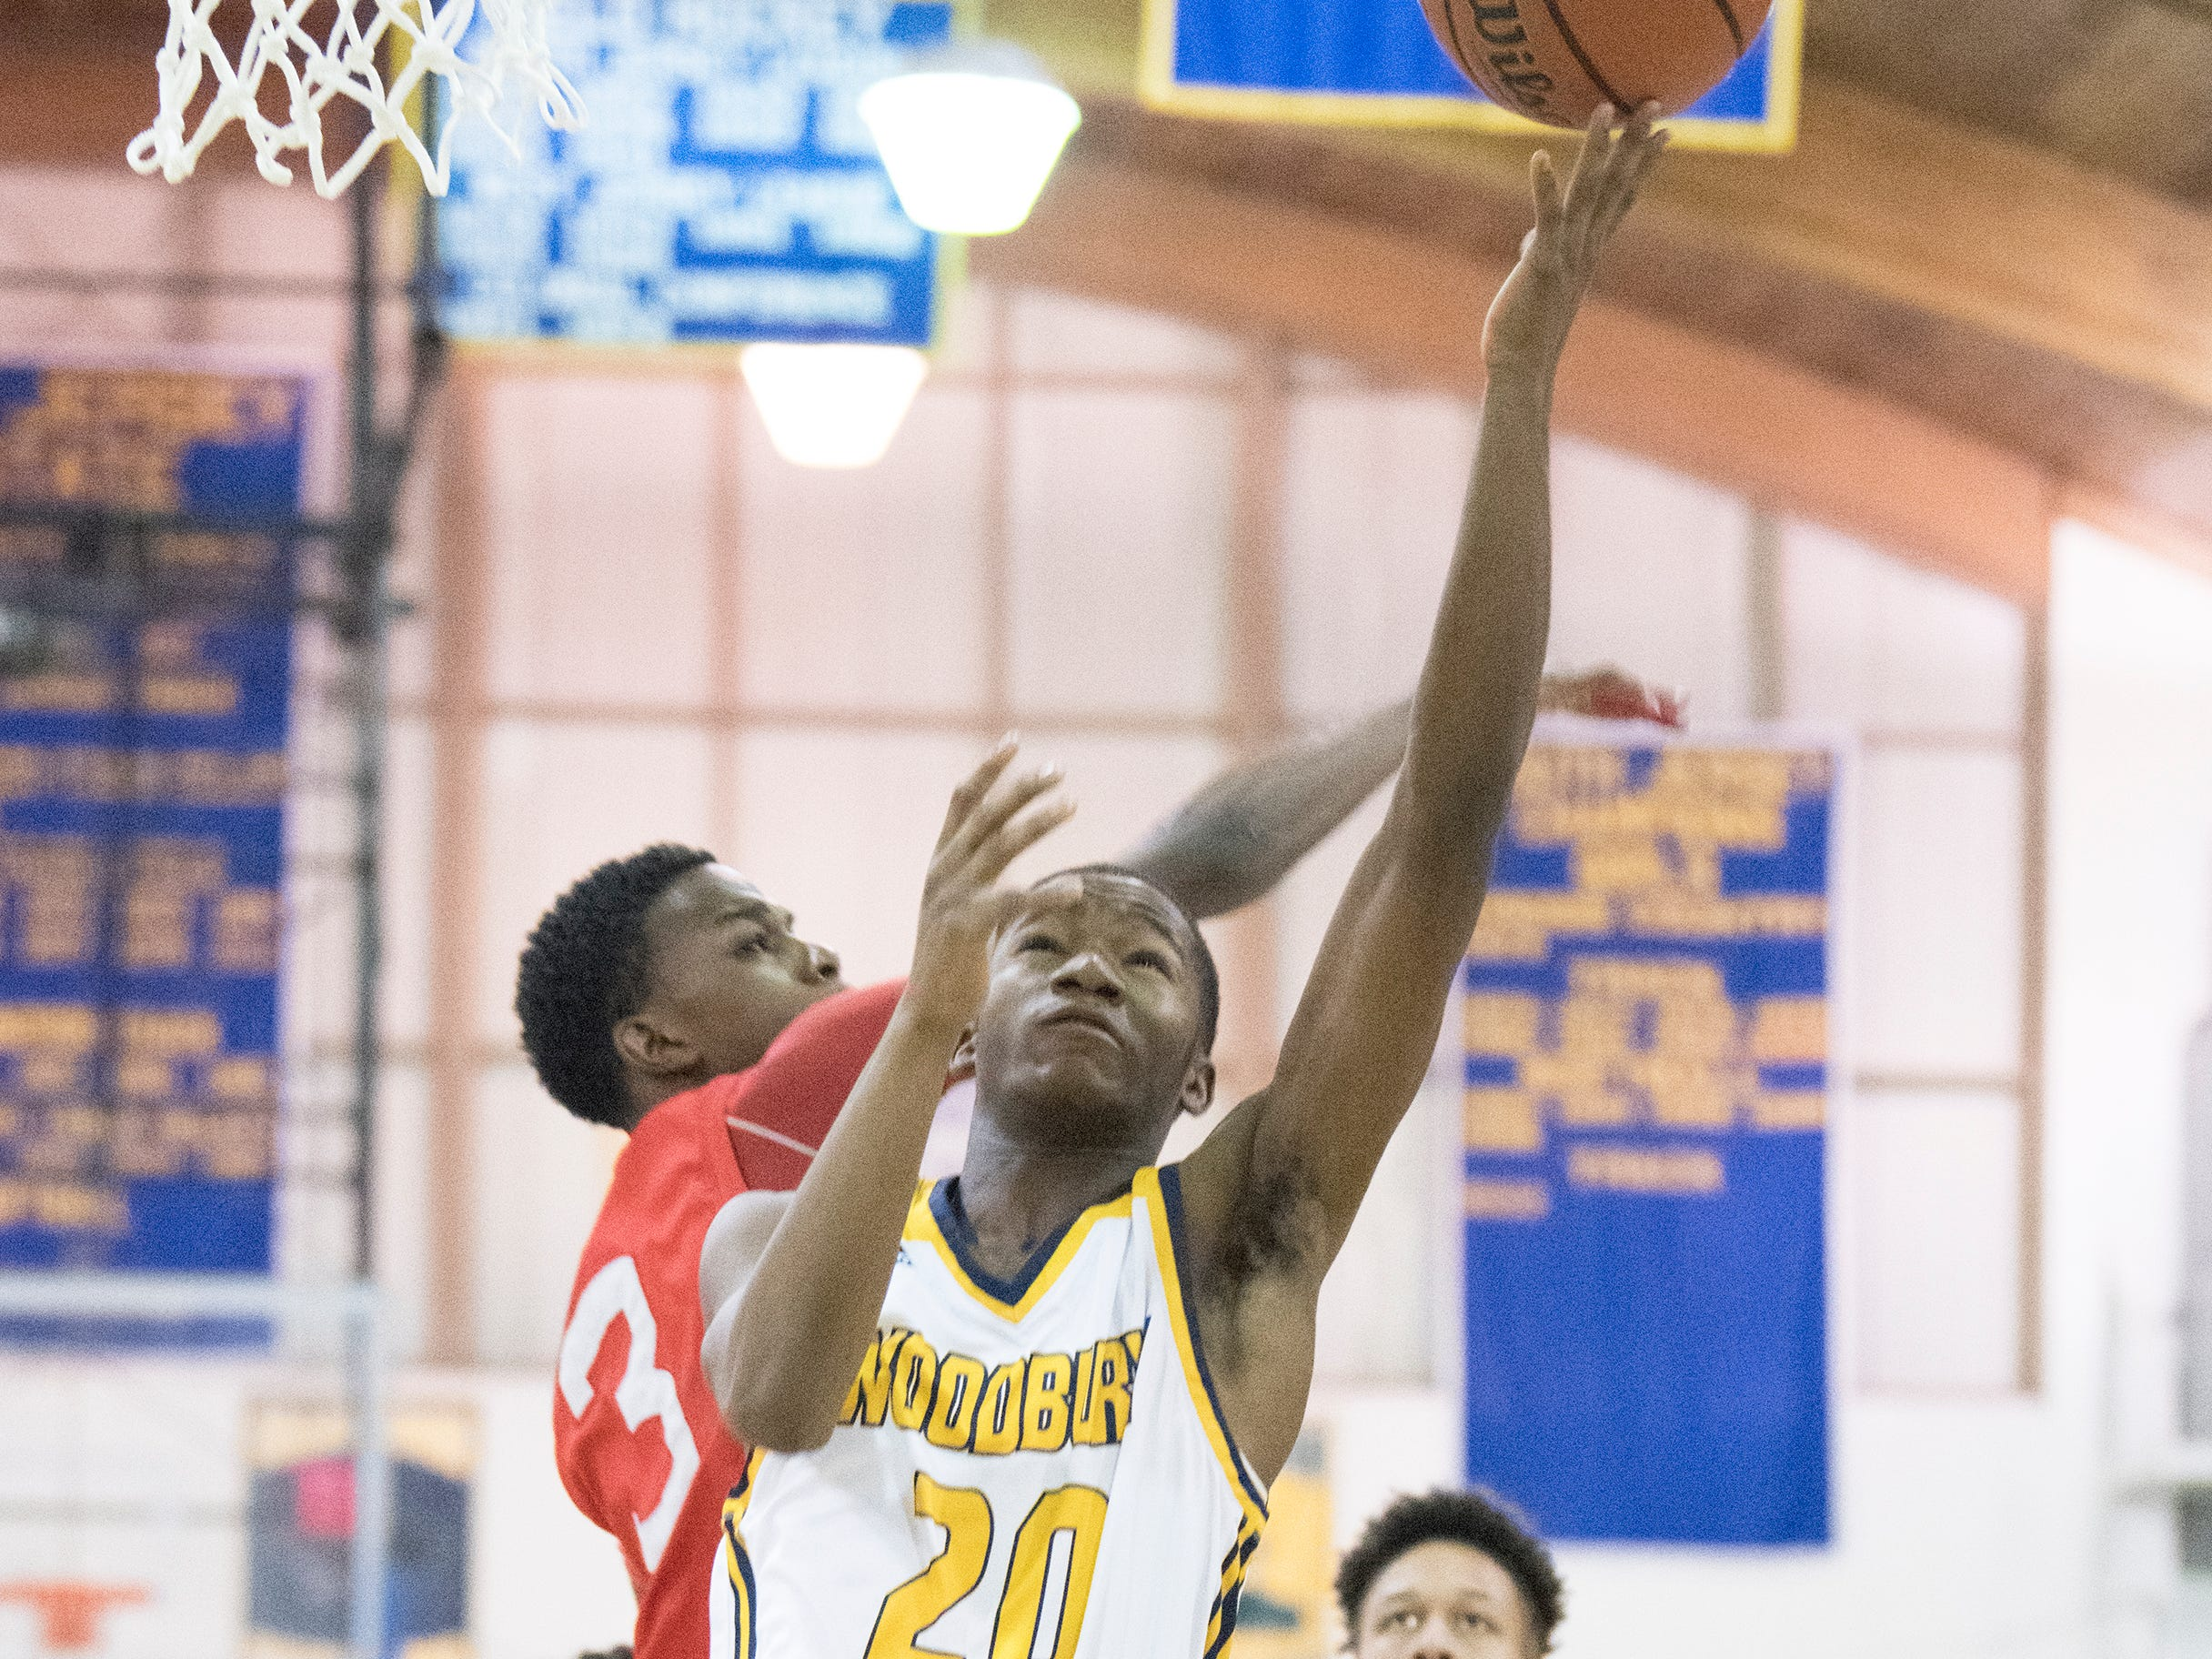 Woodbury's Javon Solomon shoots during the 1st quarter of the South Jersey Group 1, first round boys basketball playoff game between Woodbury and Paulsboro played at Woodbury High School on Tuesday, February 26, 2019.   Woodbury defeated Paulsboro, 69-41.